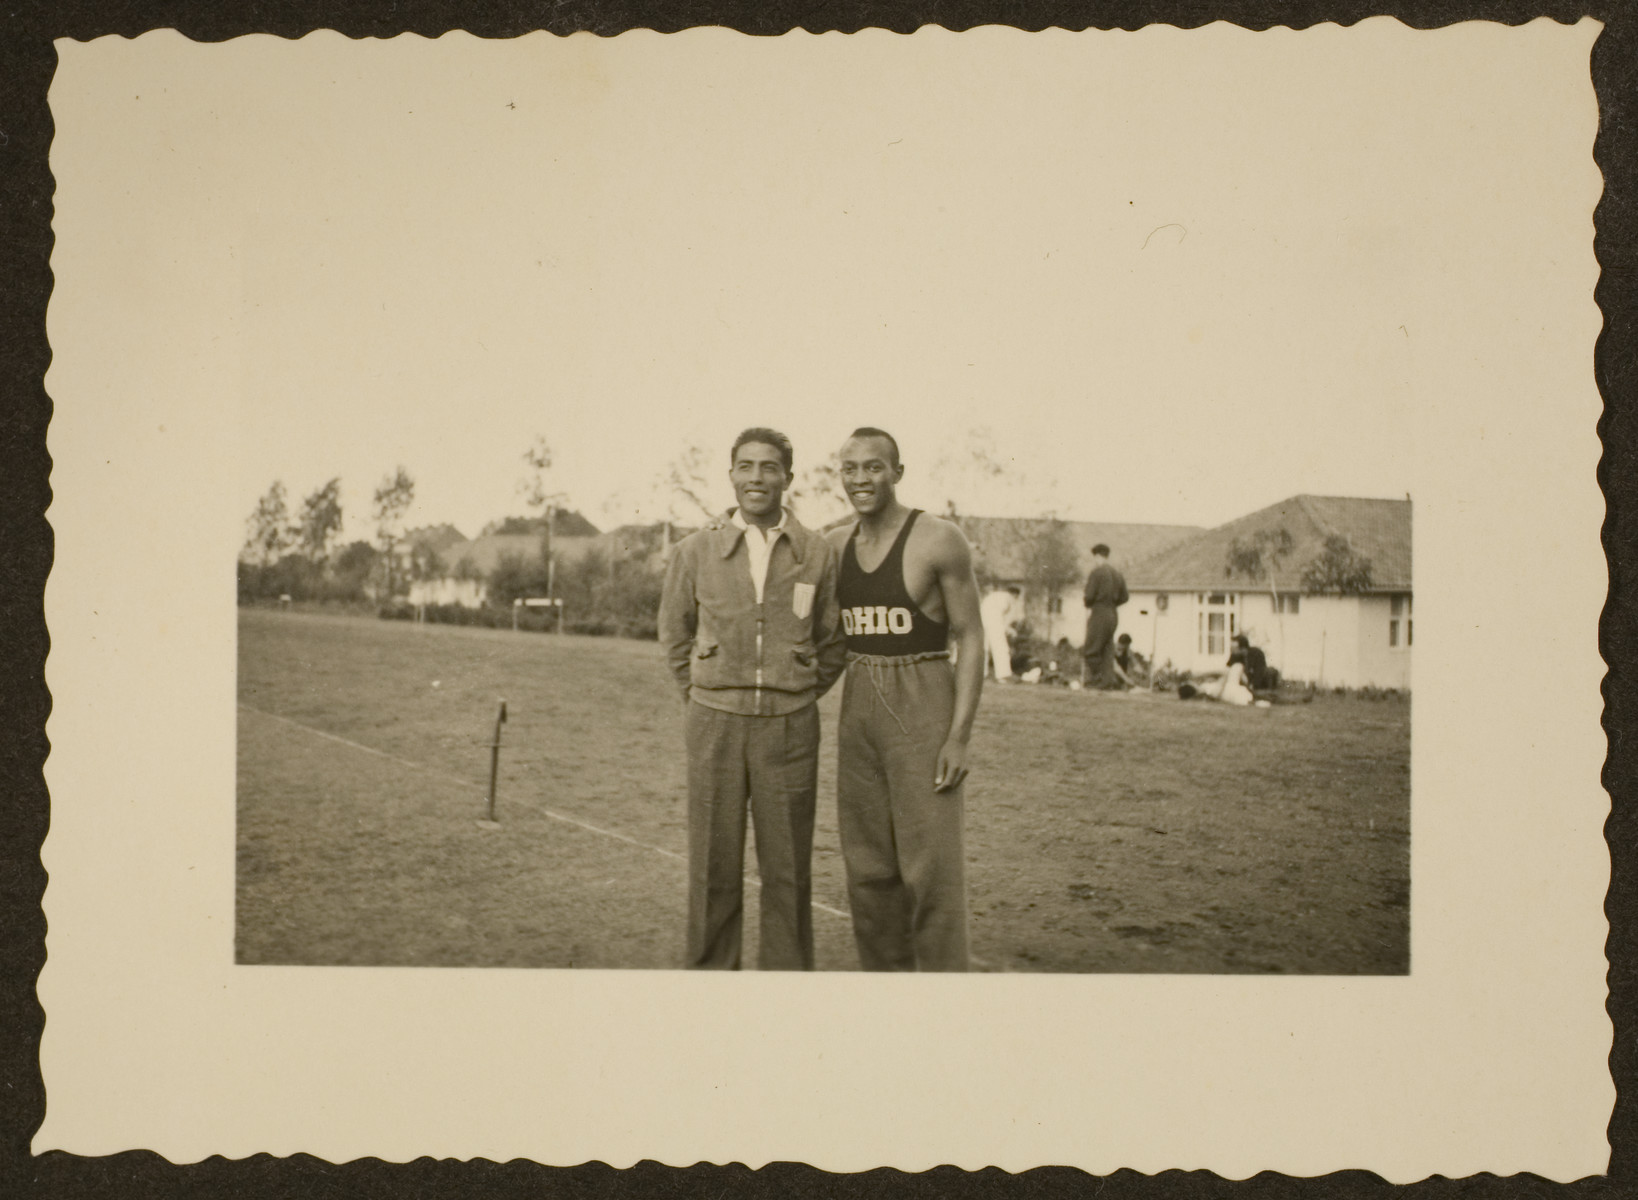 Jesse Owens, American track-and-field Olympic athlete, wearing his Ohio State University track suit, poses with another gentleman.